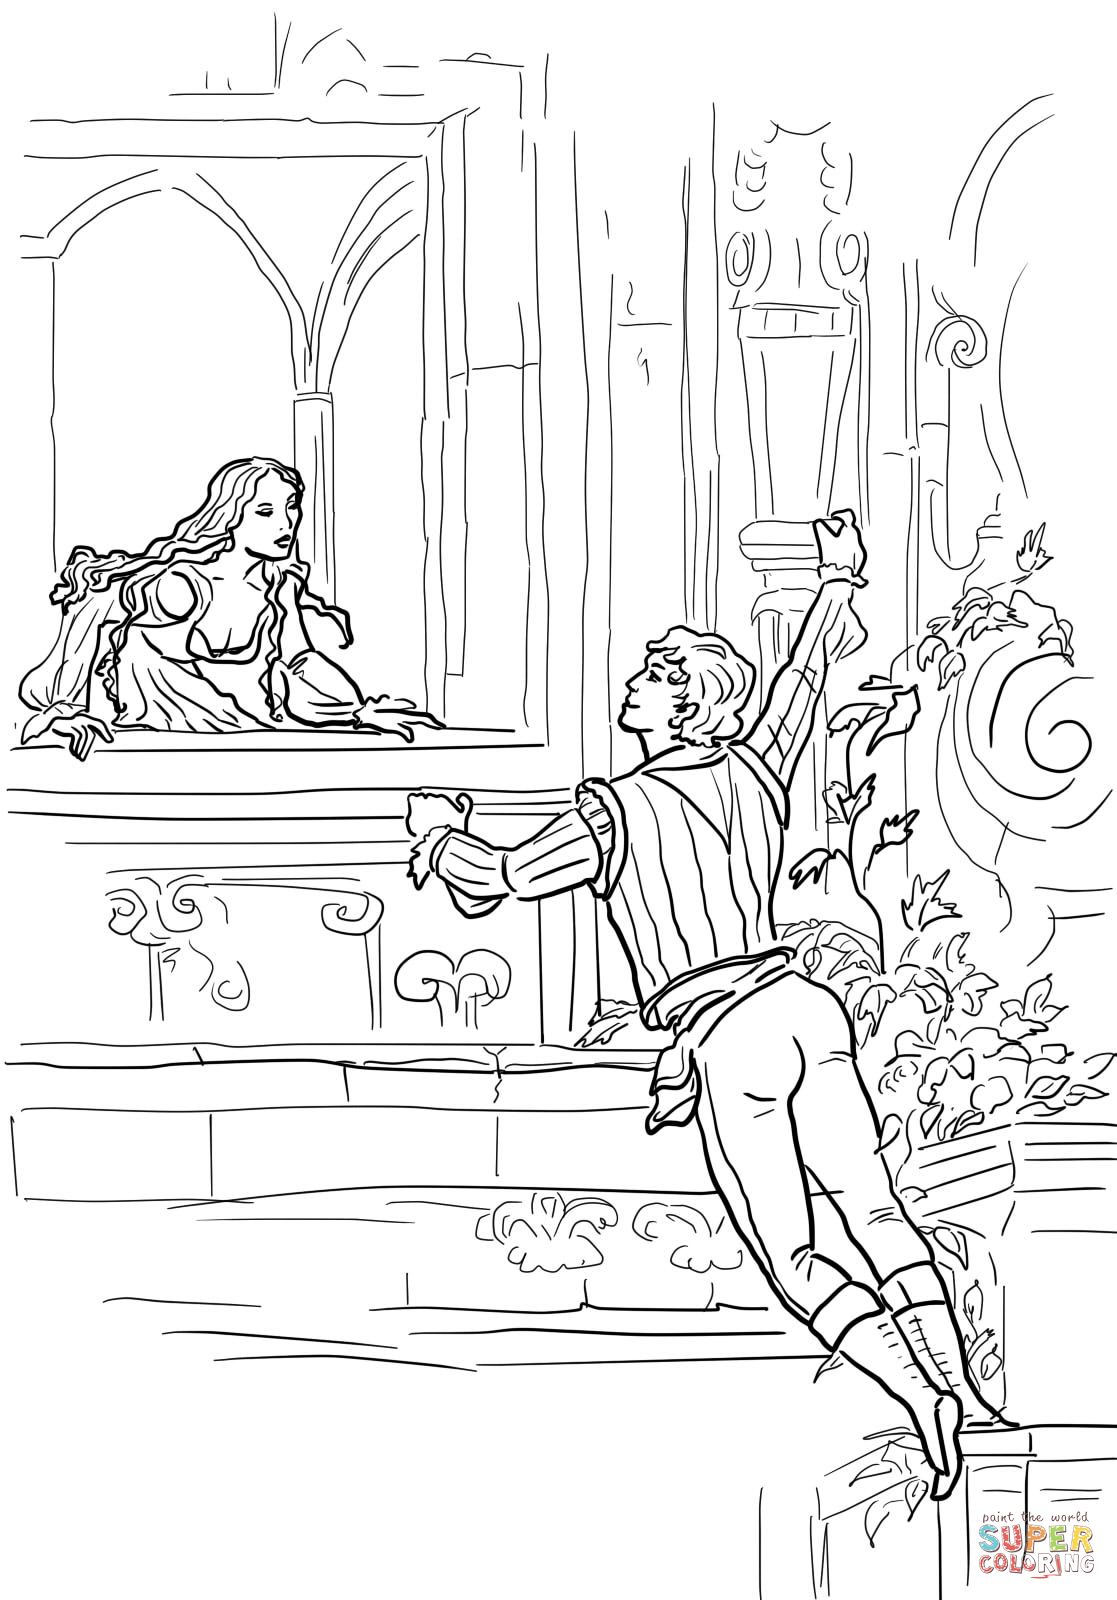 Romeo and Juliet Balcony Scene Coloring page | SuperColoring.com ...